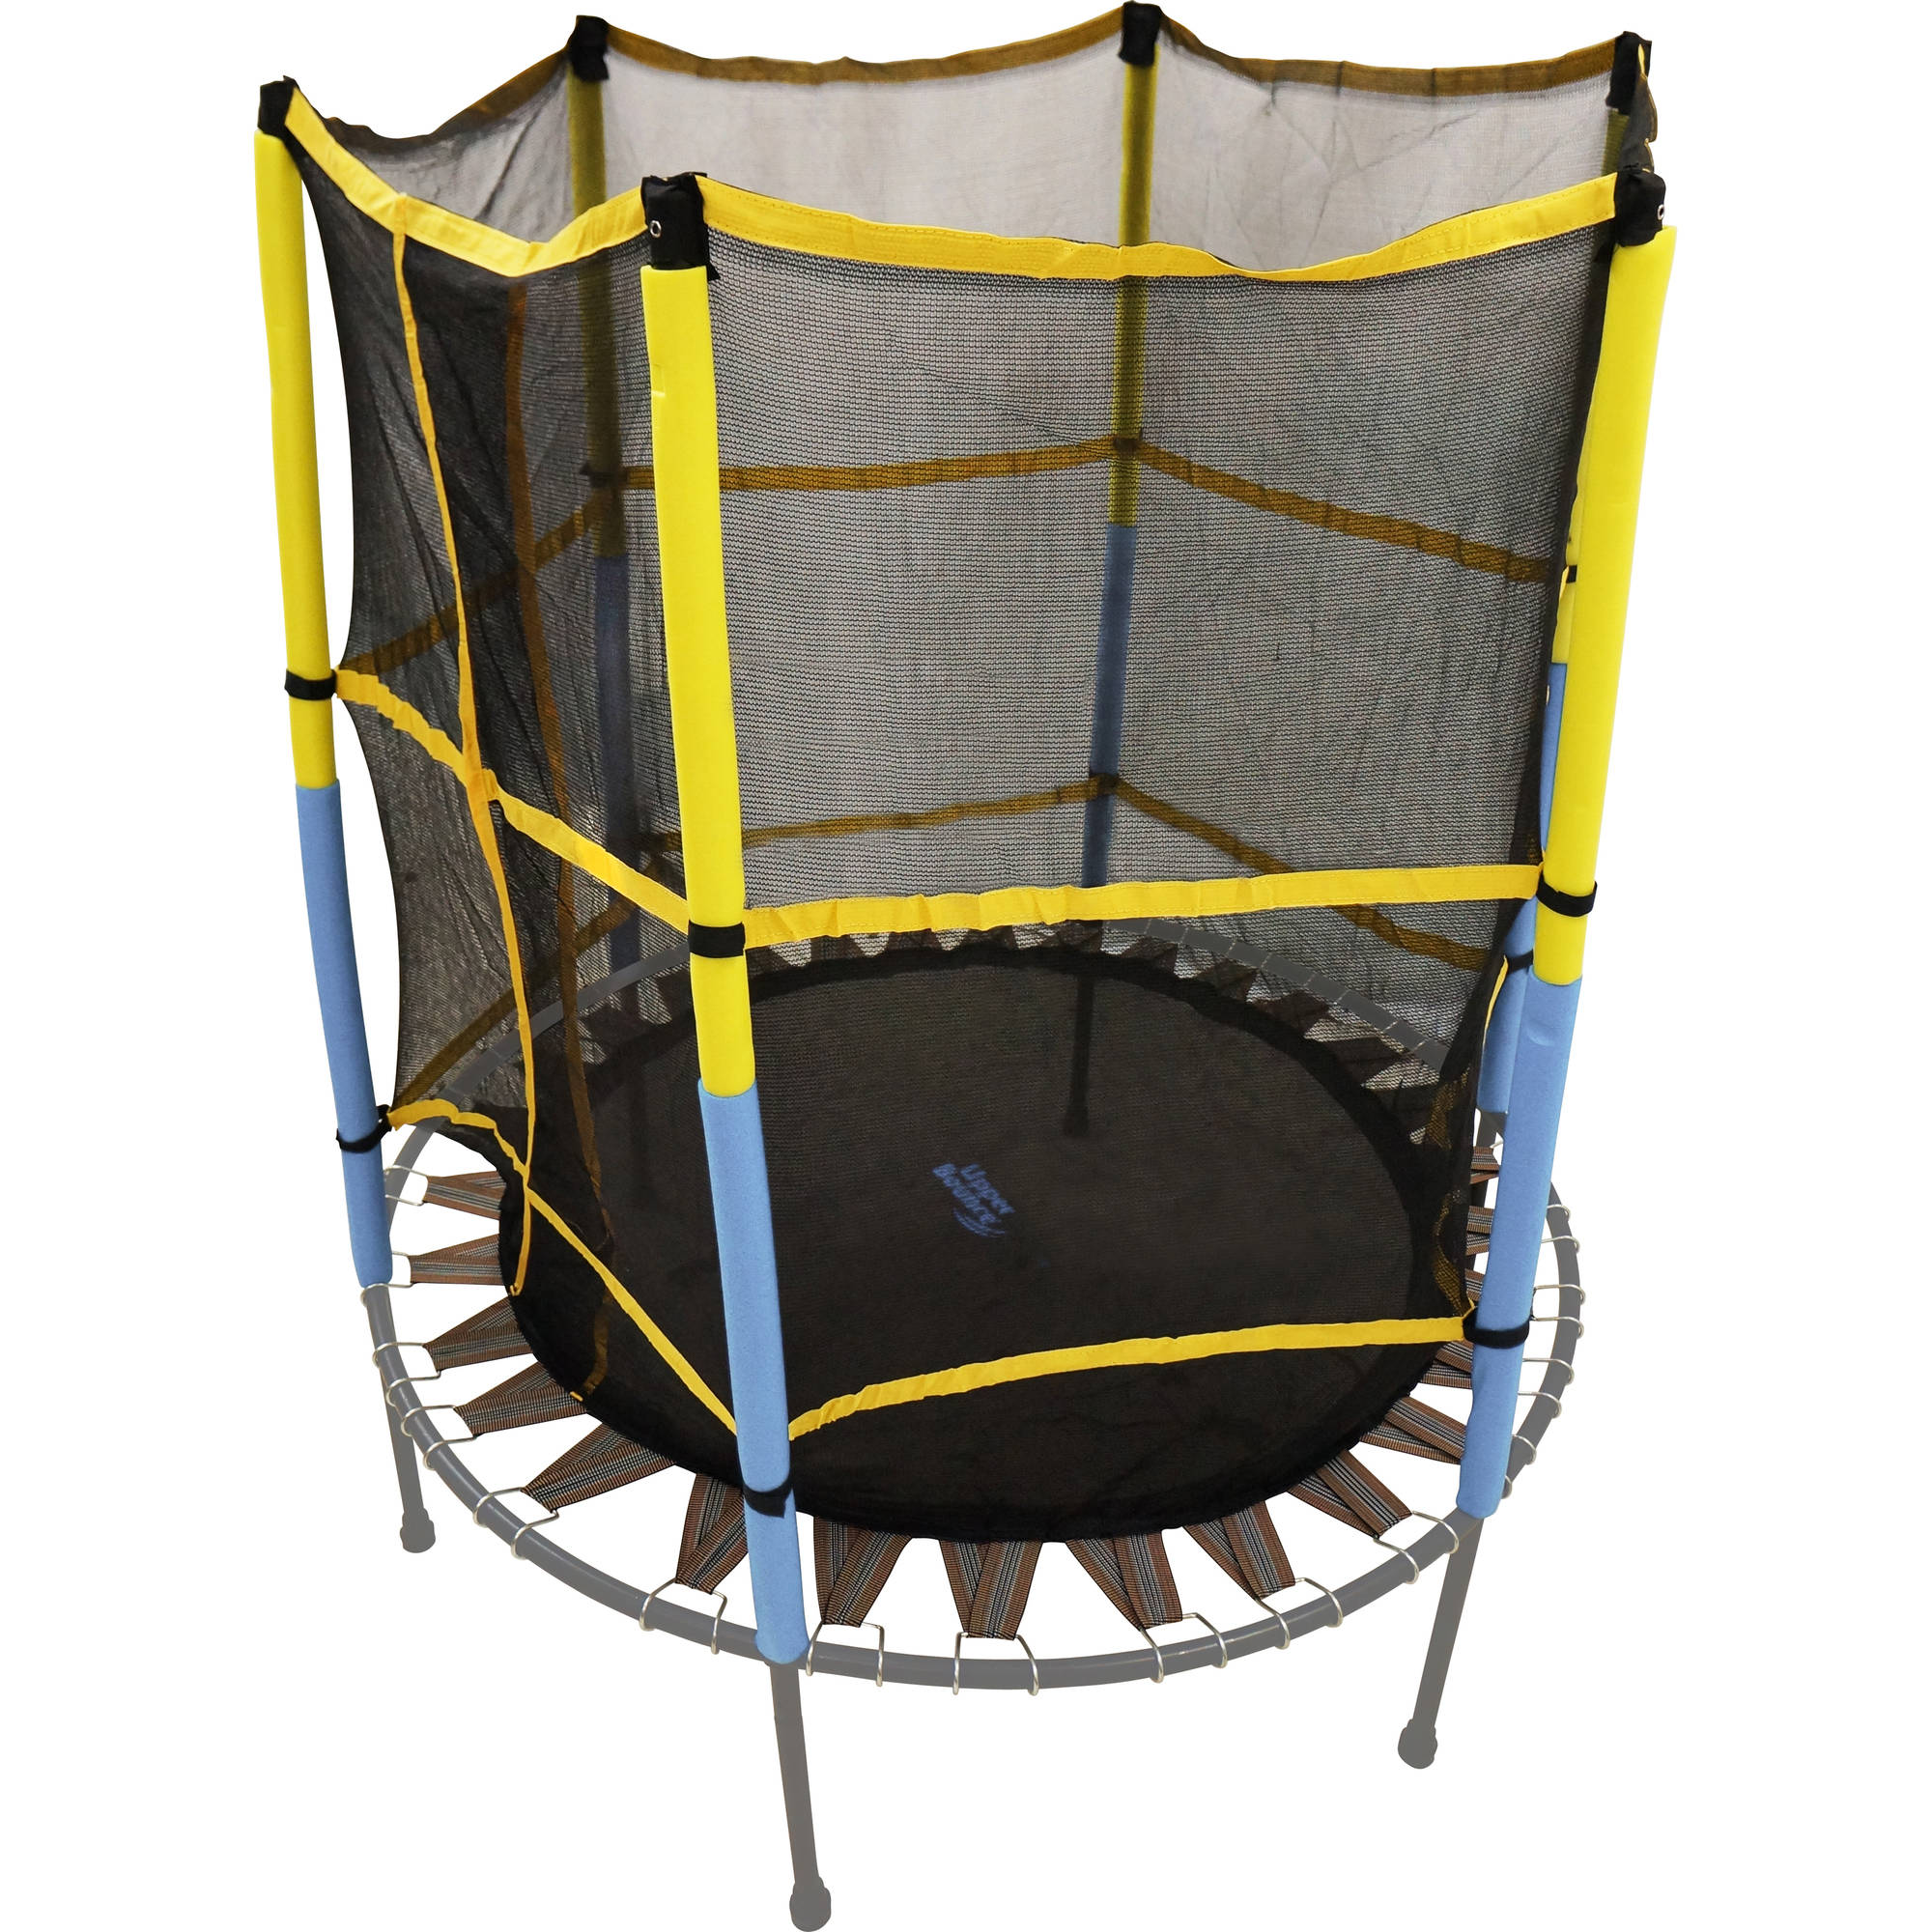 "Upper Bounce Jumping Band Mat with Attached Safety Net For 55"" Round Frame"